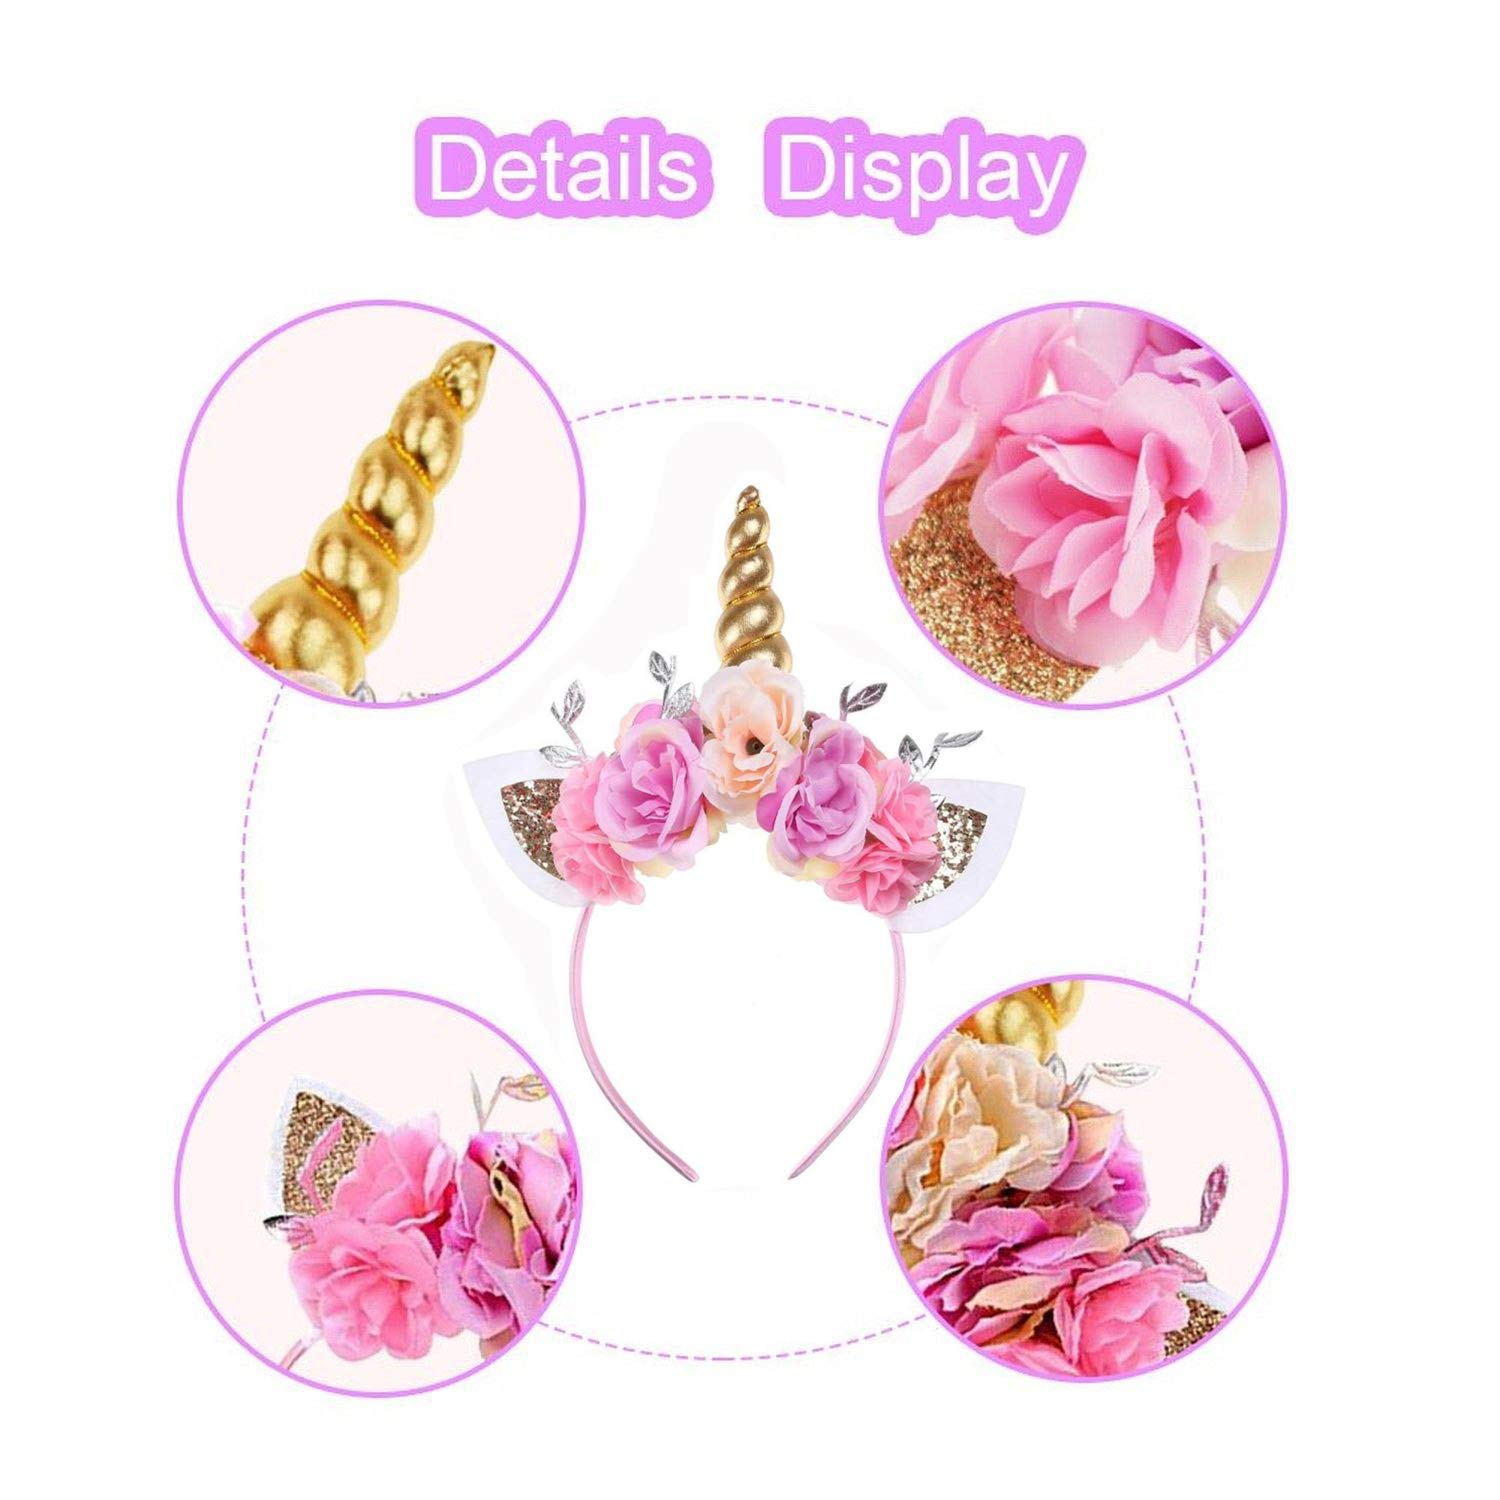 Kids Girls Unicorn Headband Gold Horn Ears Flower Headband Glitter Horn Headband Flowers Headwear Accessory for Christmas Party Cosplay Costume Birthday